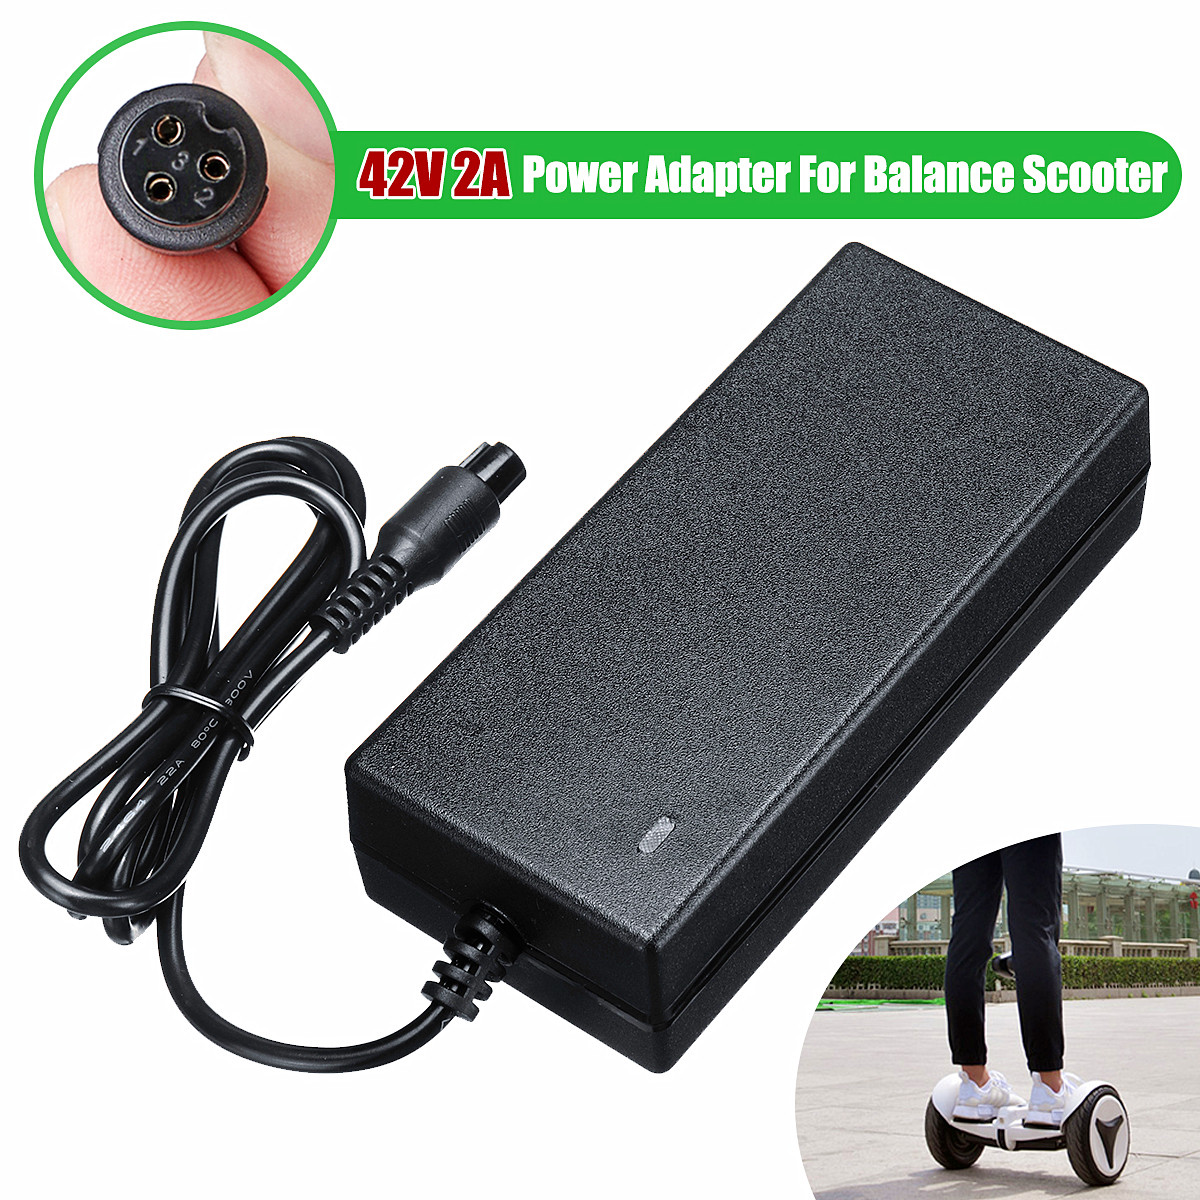 Painstaking 42v 2a Universal Battery Charger 84w Electric Power Scooter Adapter Charger Uk Plug For Hoverboard Smart Balance Wheel Accessories & Parts